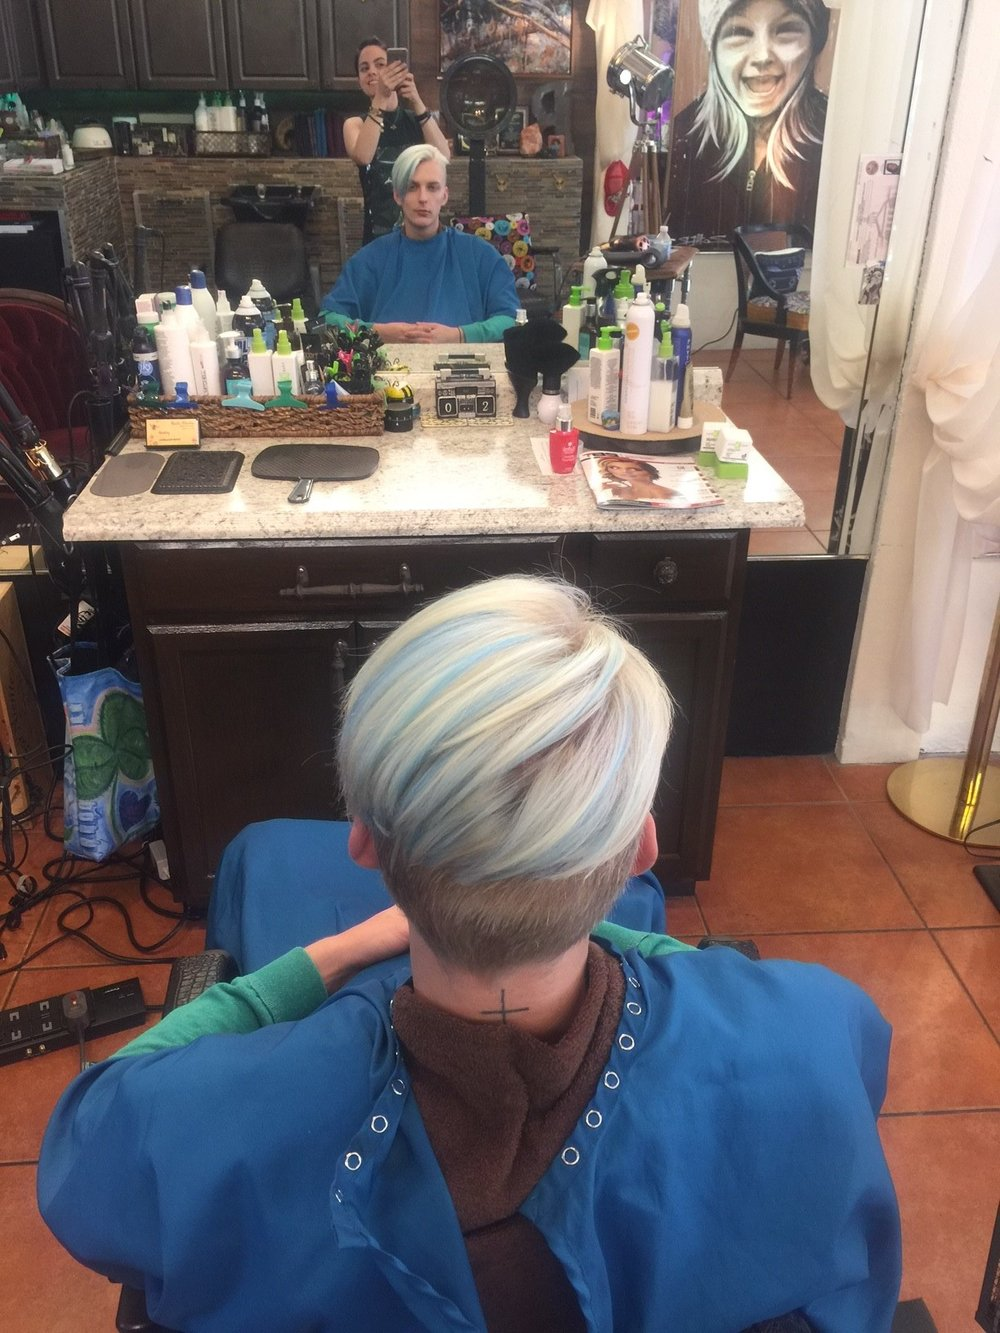 Ready to add a little bit of excitement into your life? Come on down to Roots Studio Naples where we can help add that colorful flare you have always been missing.